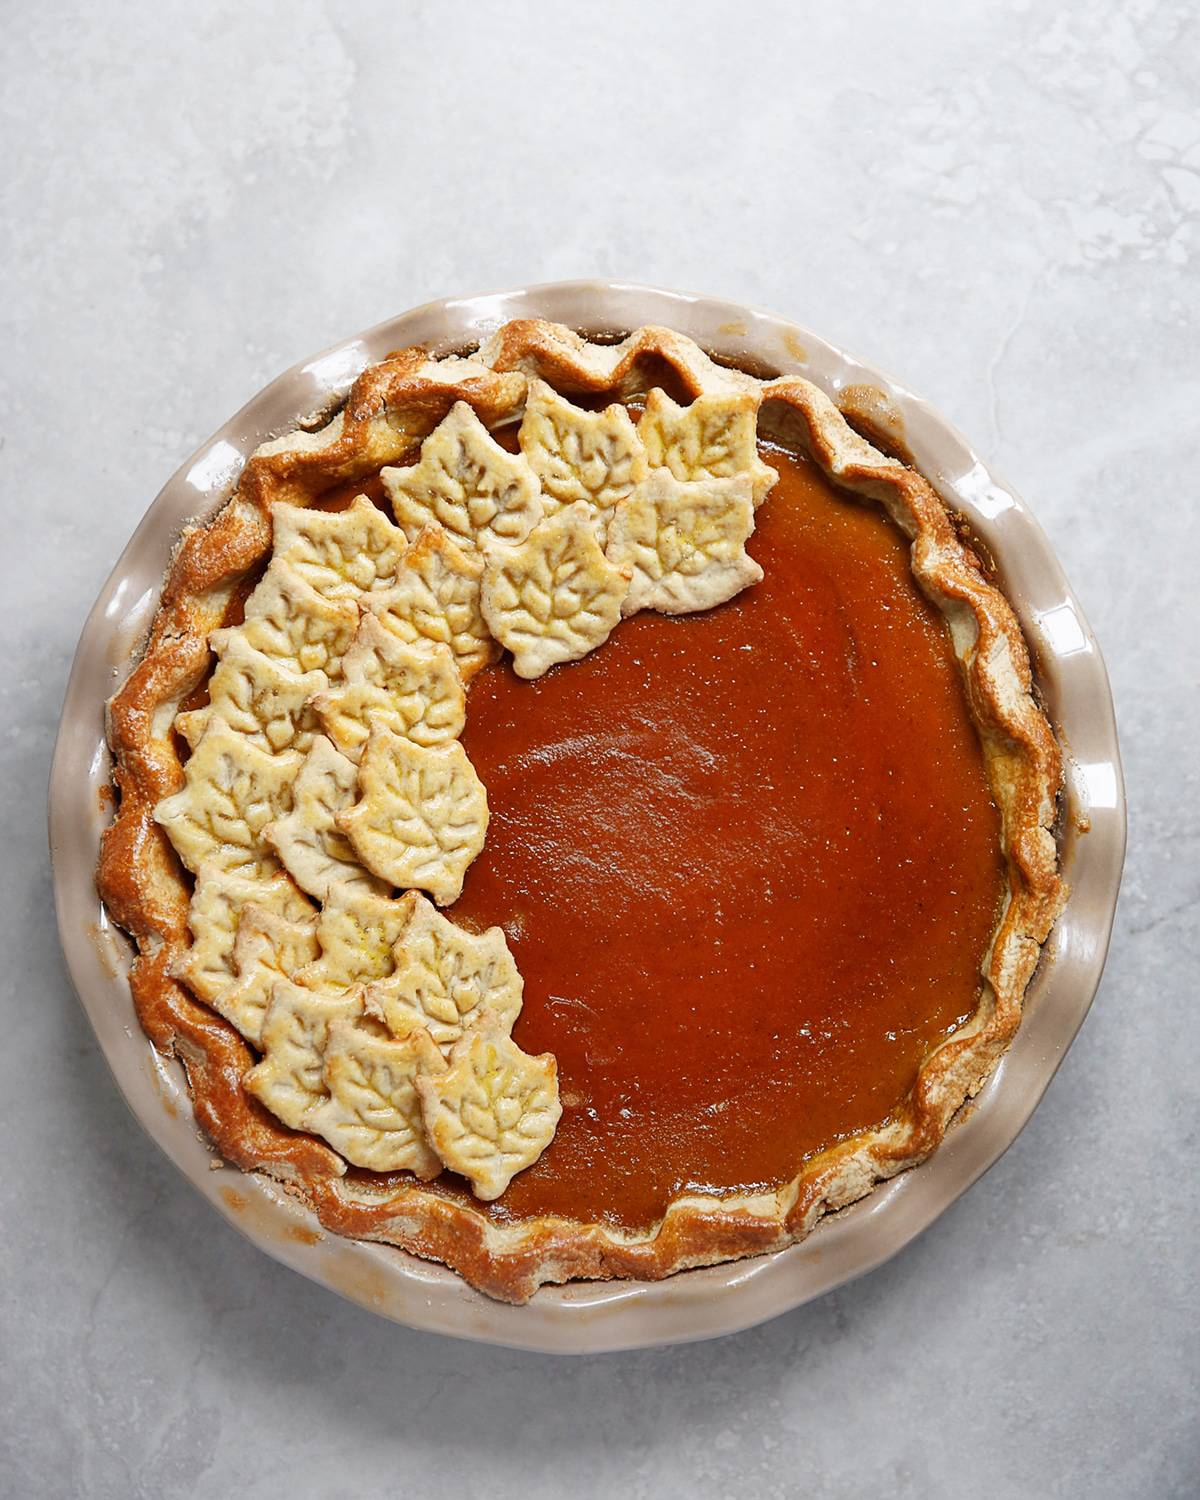 Whole gluten free pumpkin pie